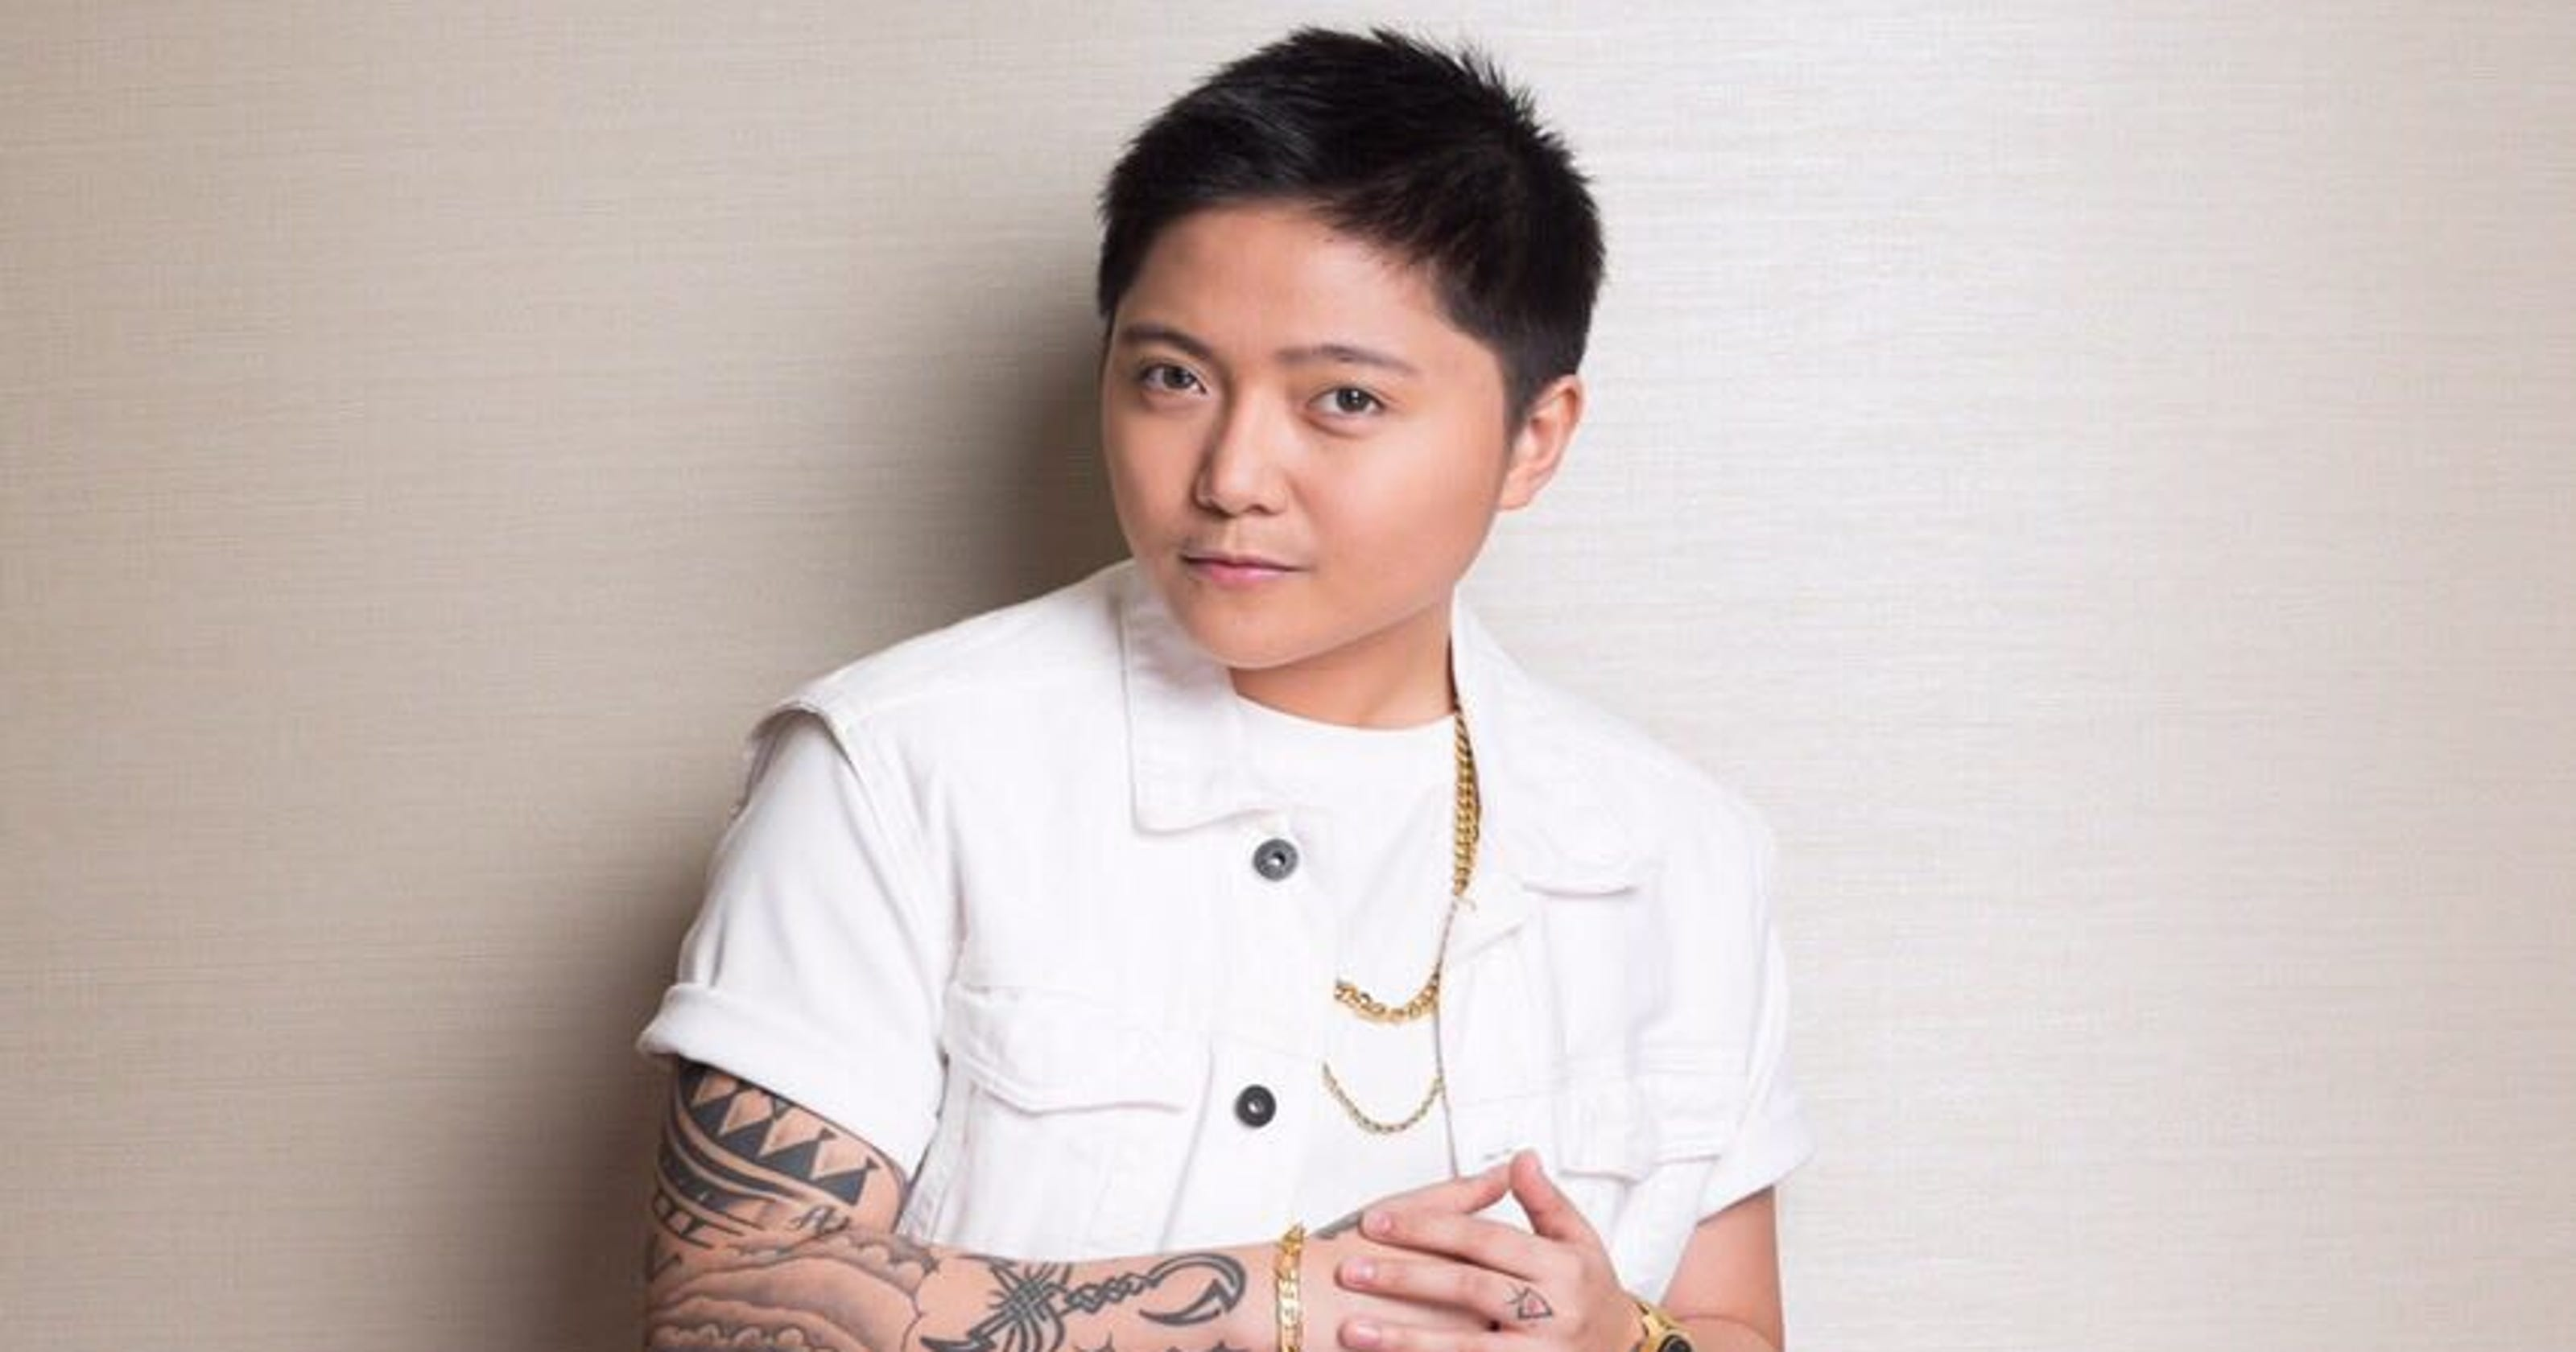 Jake Zyrus talks changing his name from Charice, his transgender journey